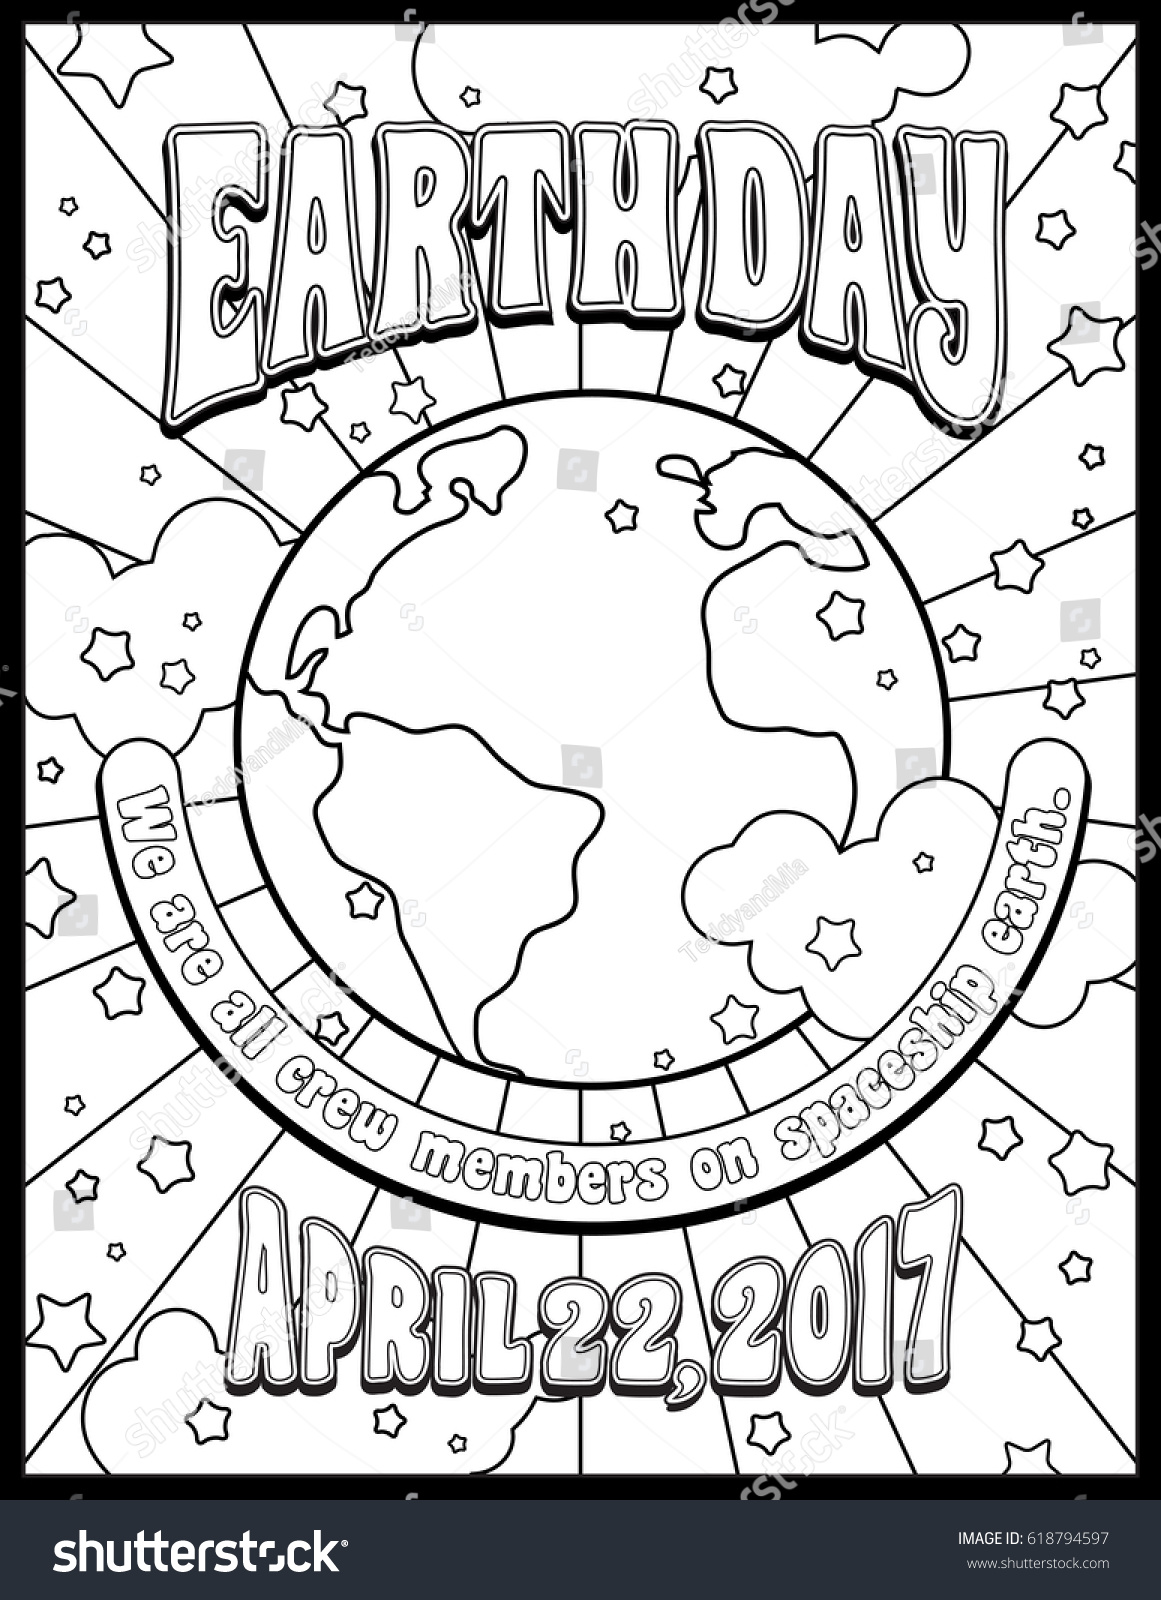 Earth Day Poster Design Coloring Page Stock Photo (Photo, Vector ...